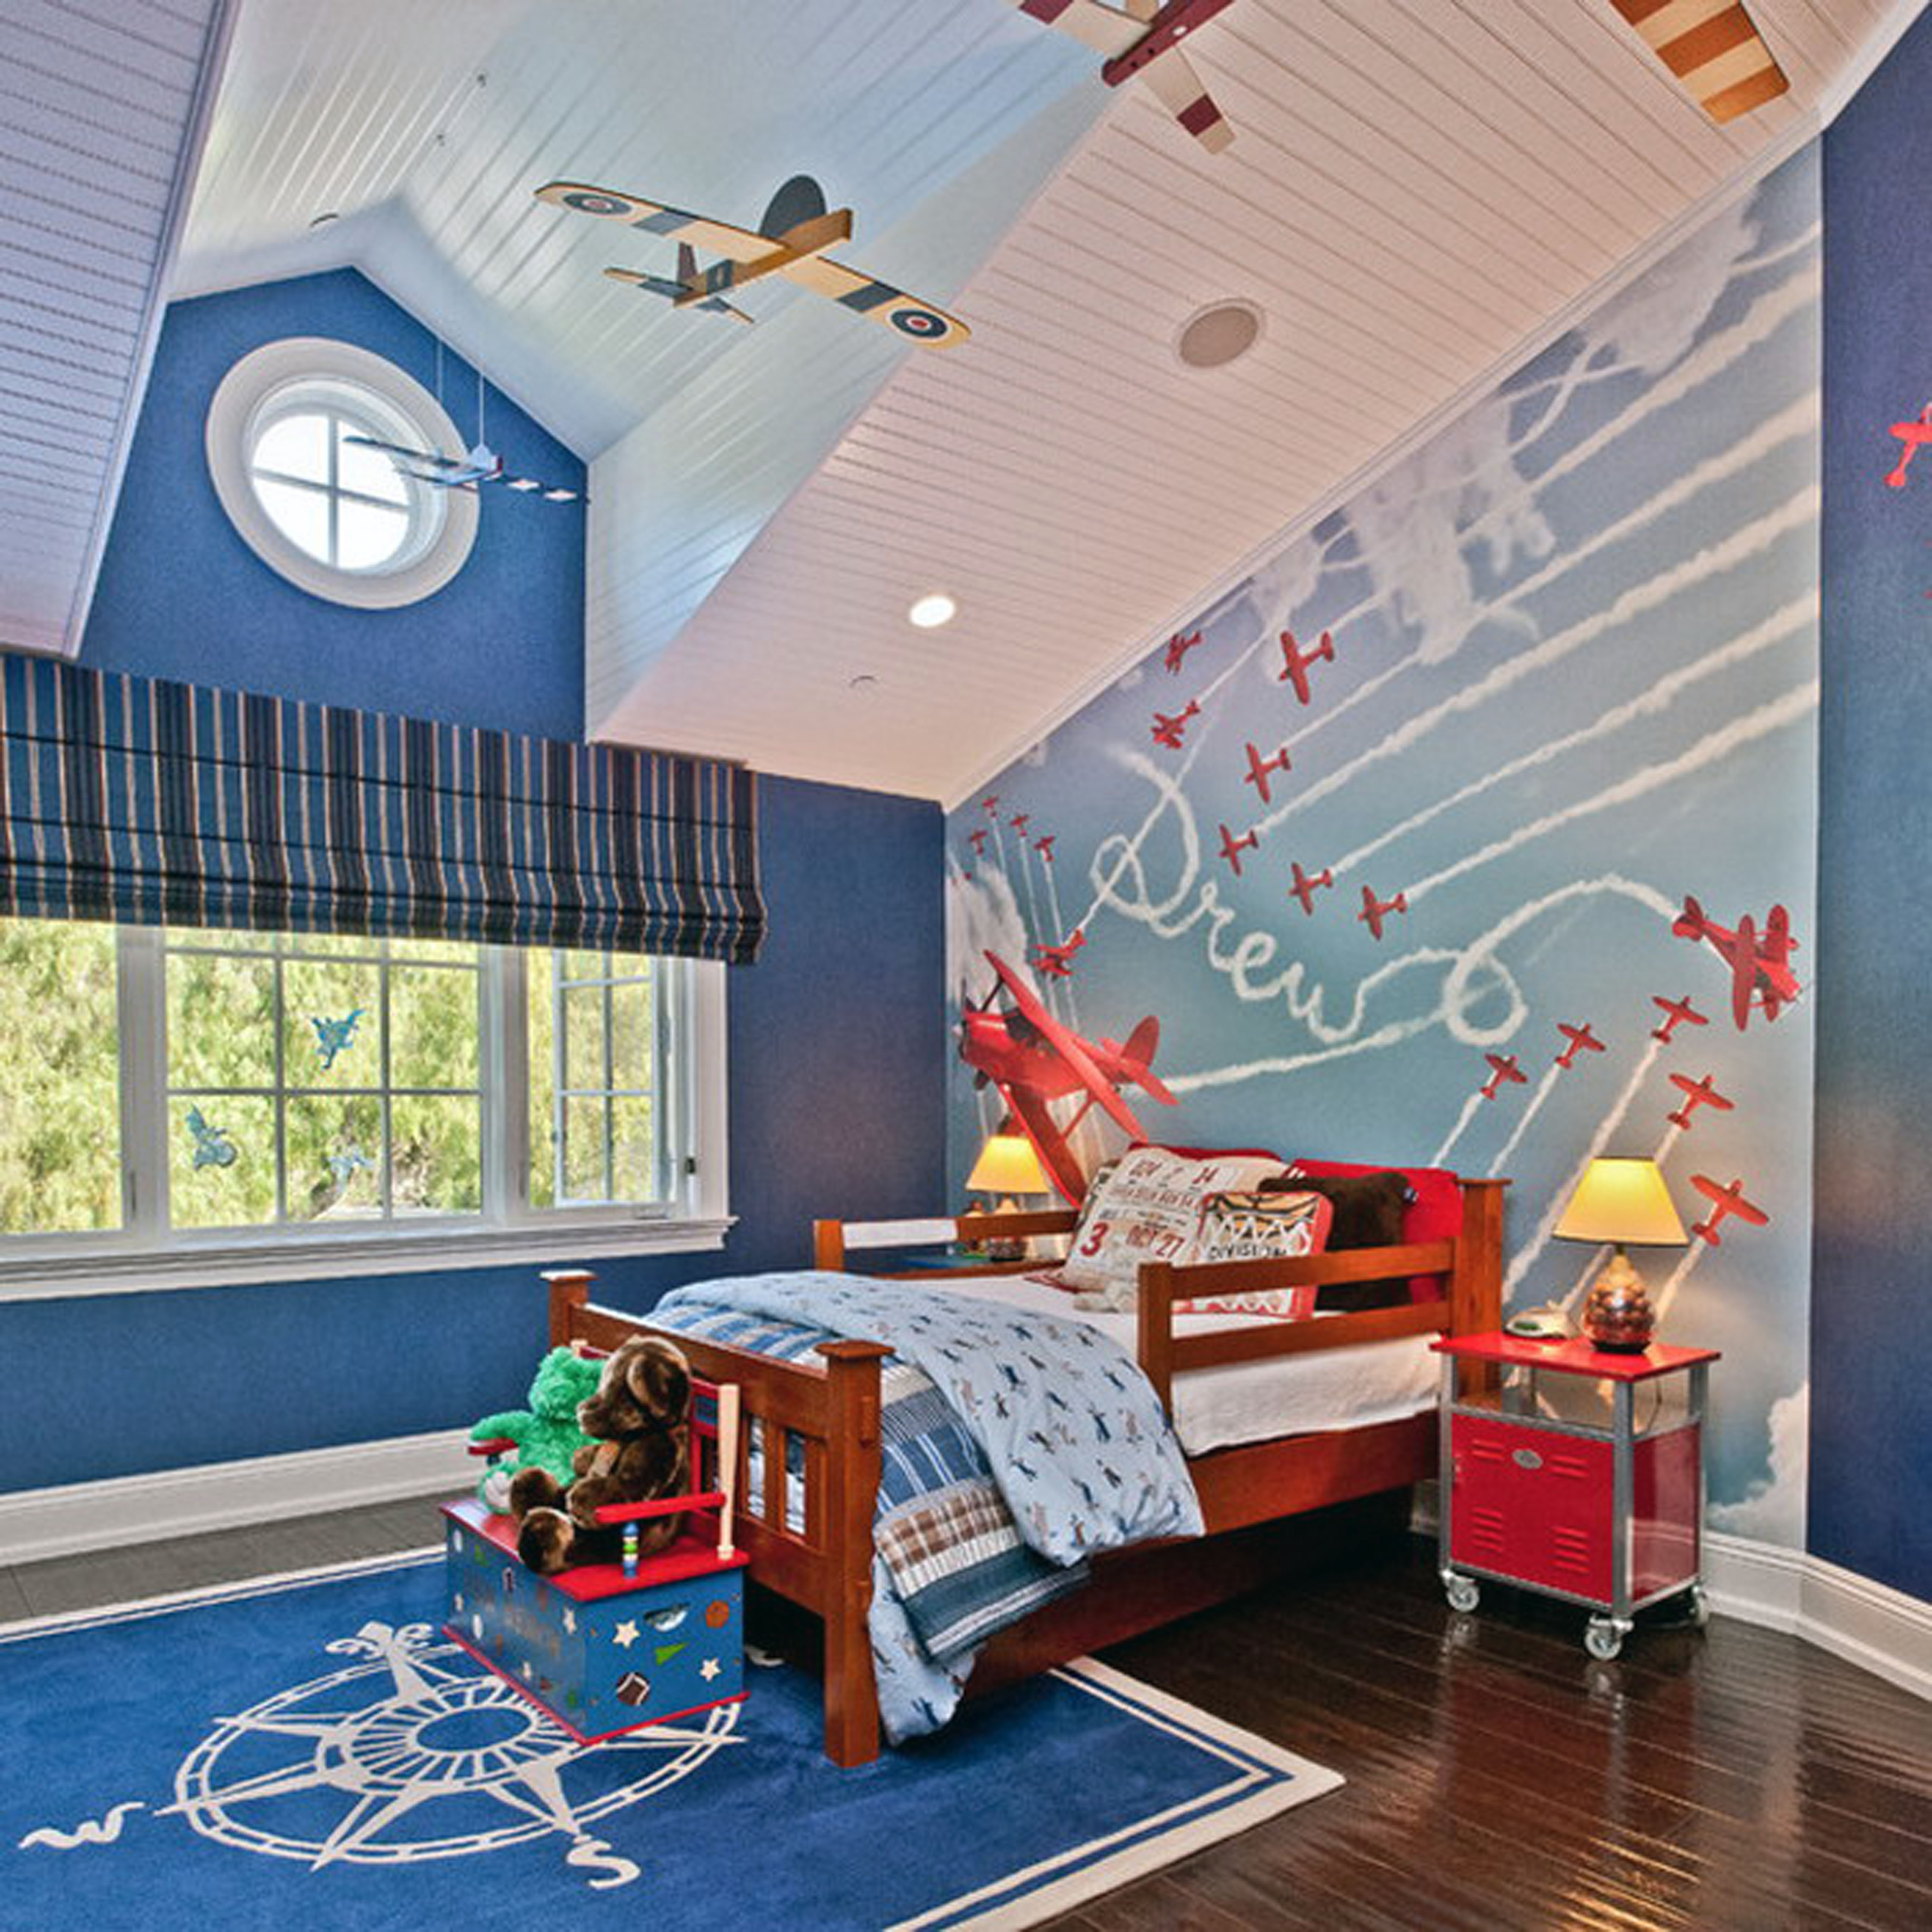 Kids Room Wooden Bed Frame And Roman Blinds For Window Treatment In Kids Roman Blinds (Image 7 of 15)